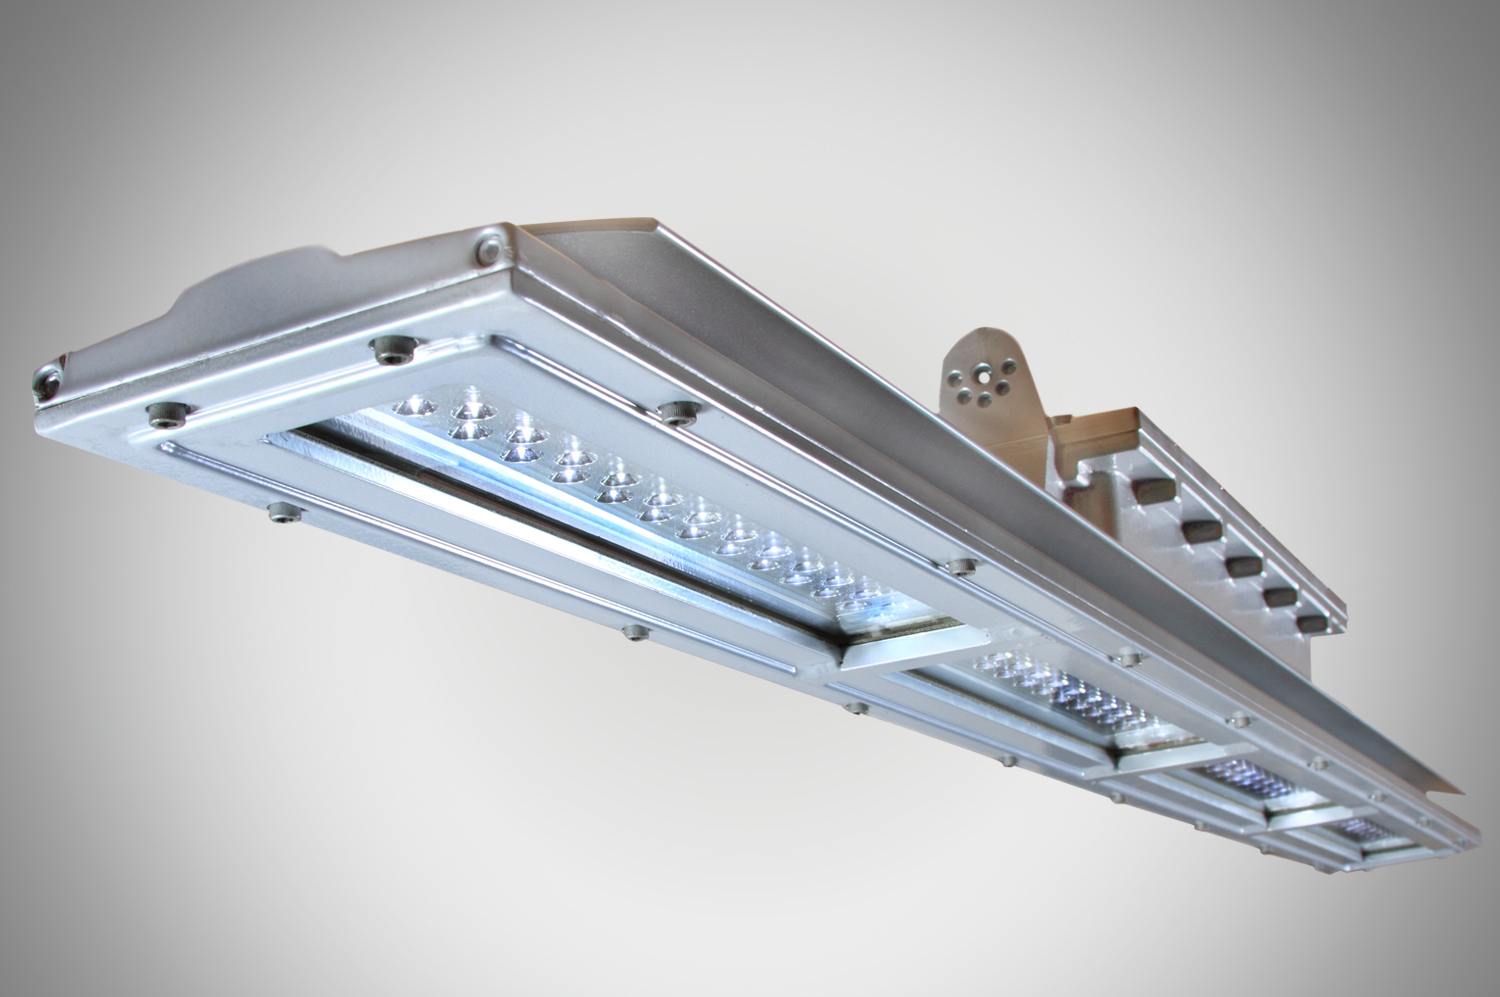 Dialight Corporation Unveils Industrys First Class I Div Commercial Wiring Flouresent Lights 1 Led Linear Fixture For Hazardous Locations